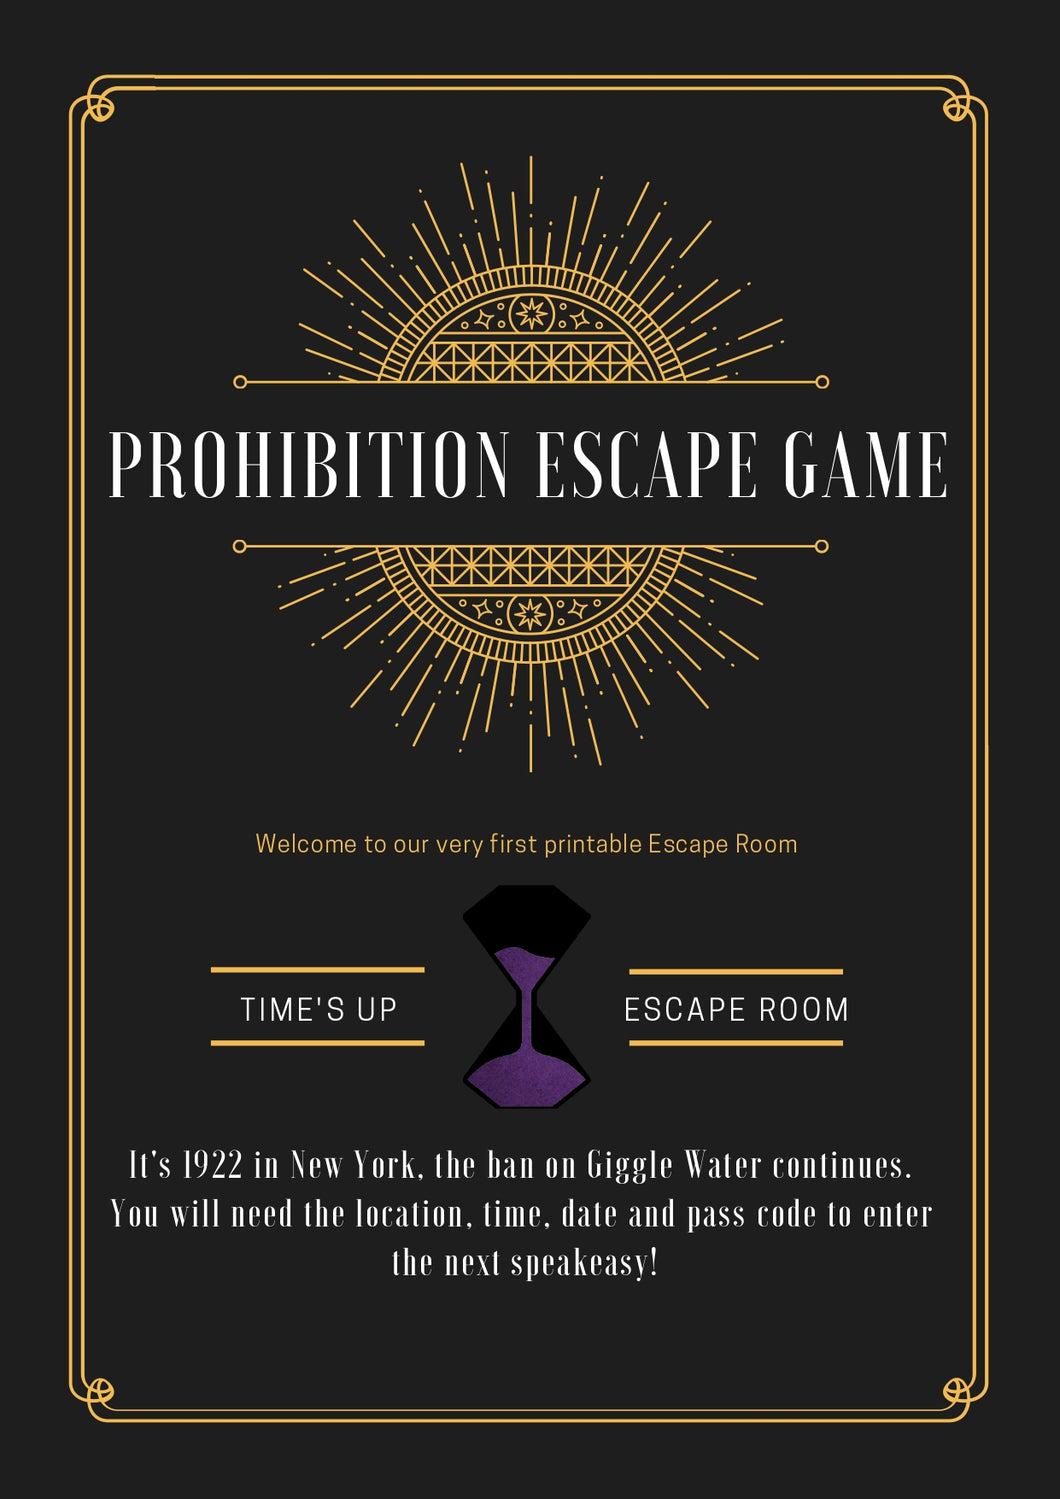 Indoors Prohibition Escape Room